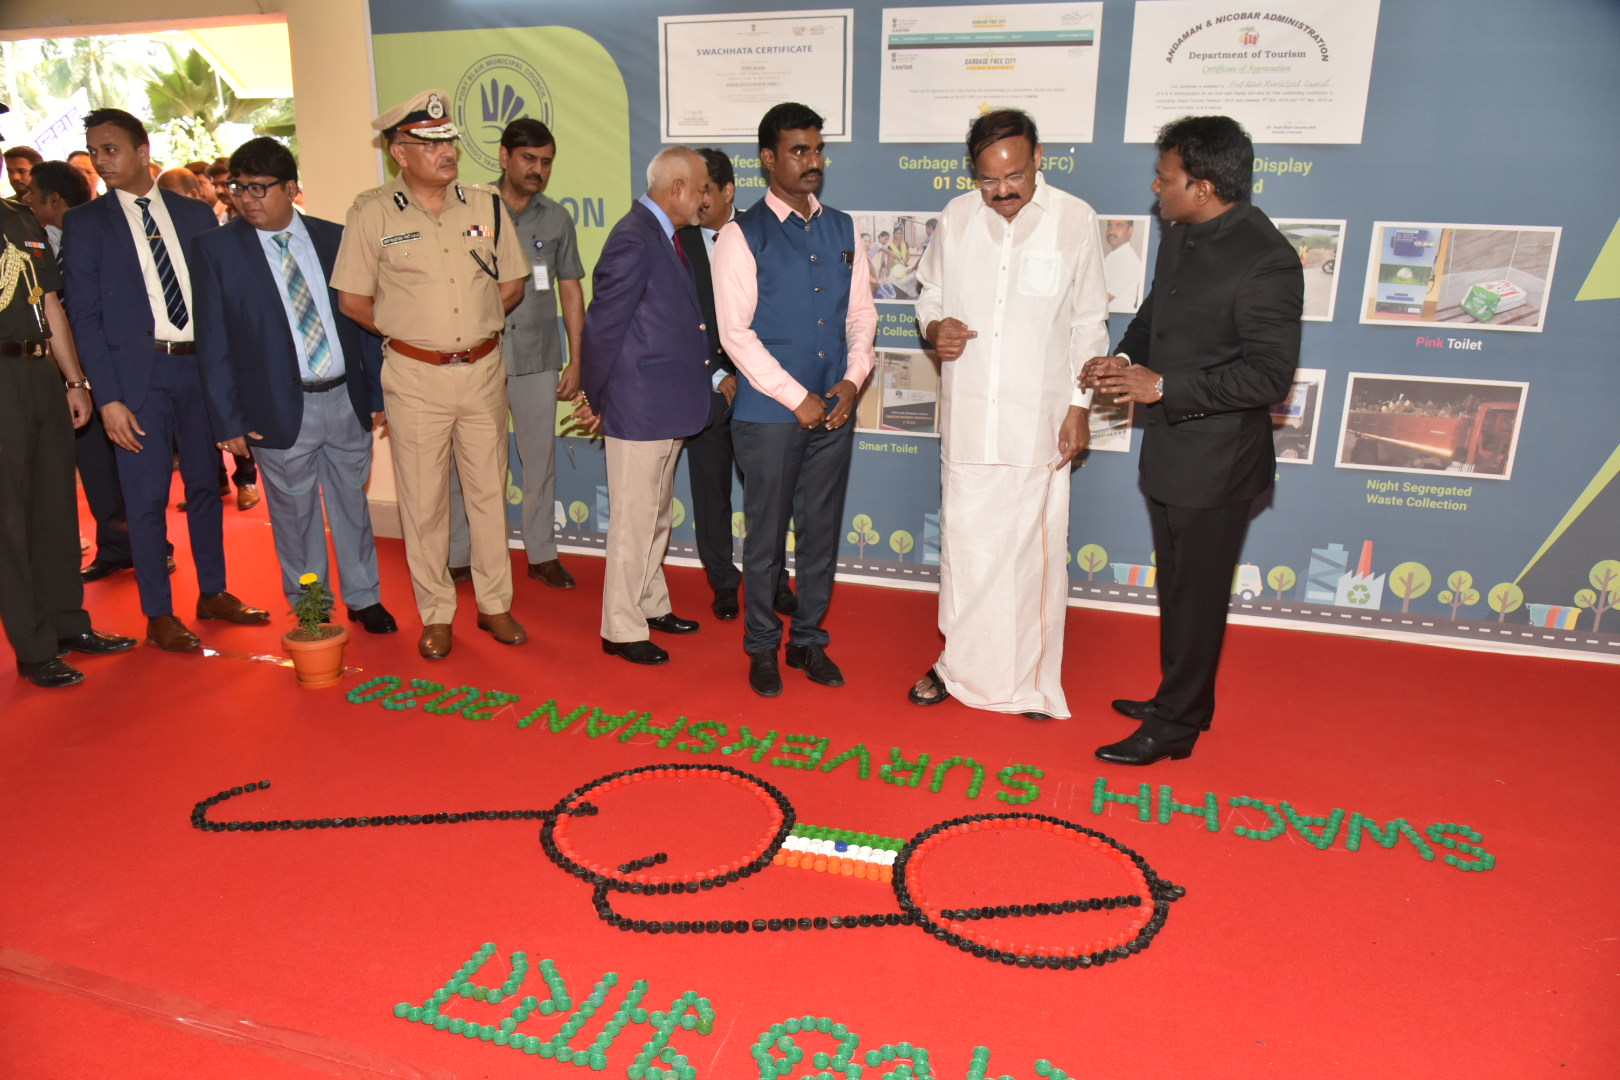 The Vice President, Shri M. Venkaiah Naidu visiting the photo gallery and exhibition put up by the Port Blair Municipal Council on the theme 'Sanitation and Solid Waste Management' in Port Blair, Andaman and Nicobar on January 17, 2020.